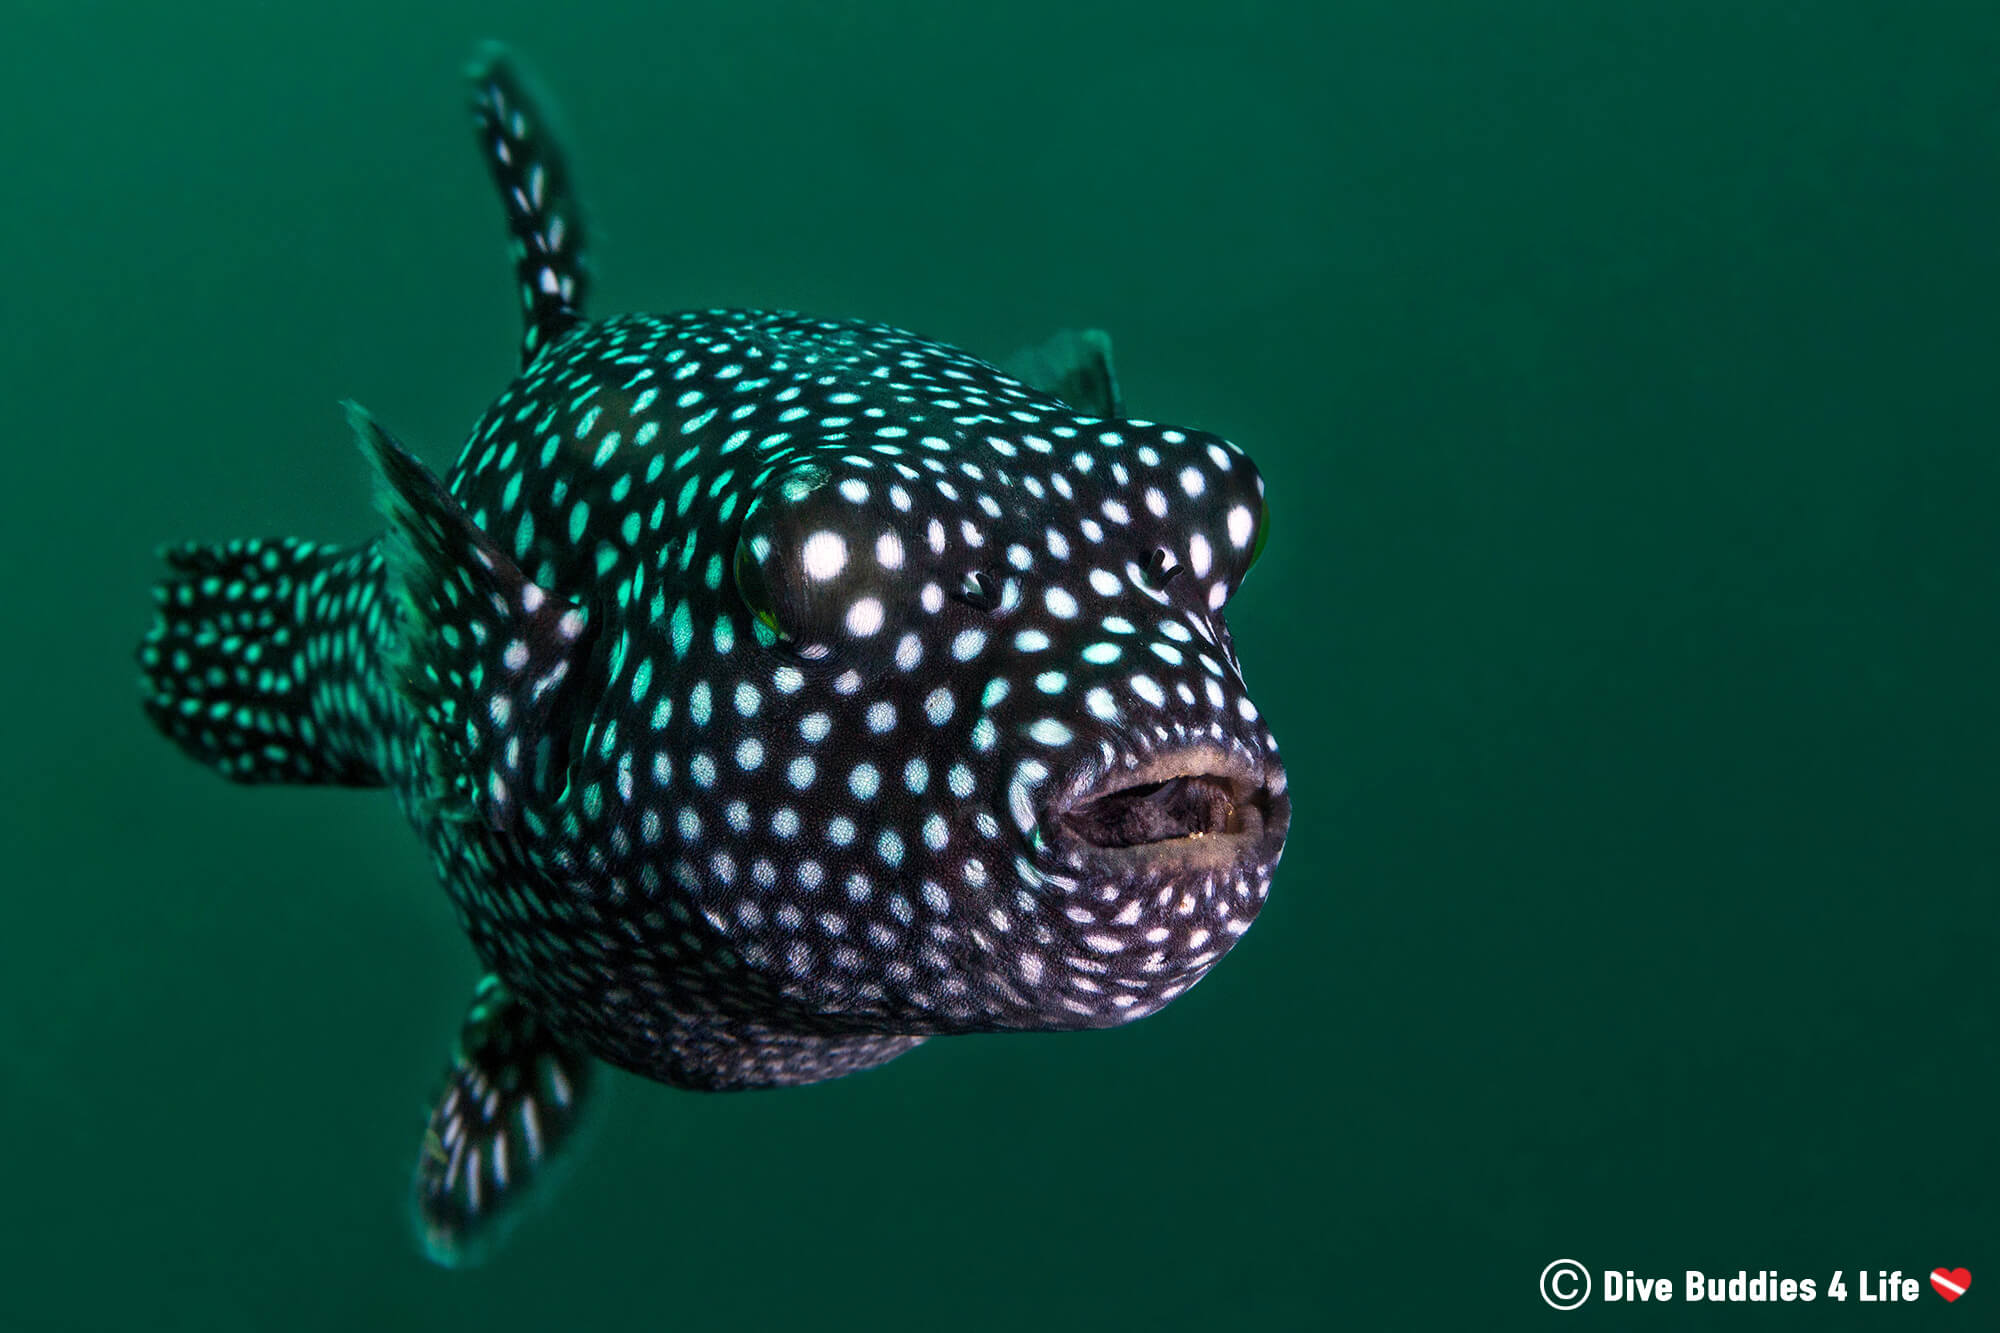 Guinea Fowl Puffer in the Costa Rican Ocean, Catalina Islands, Central America